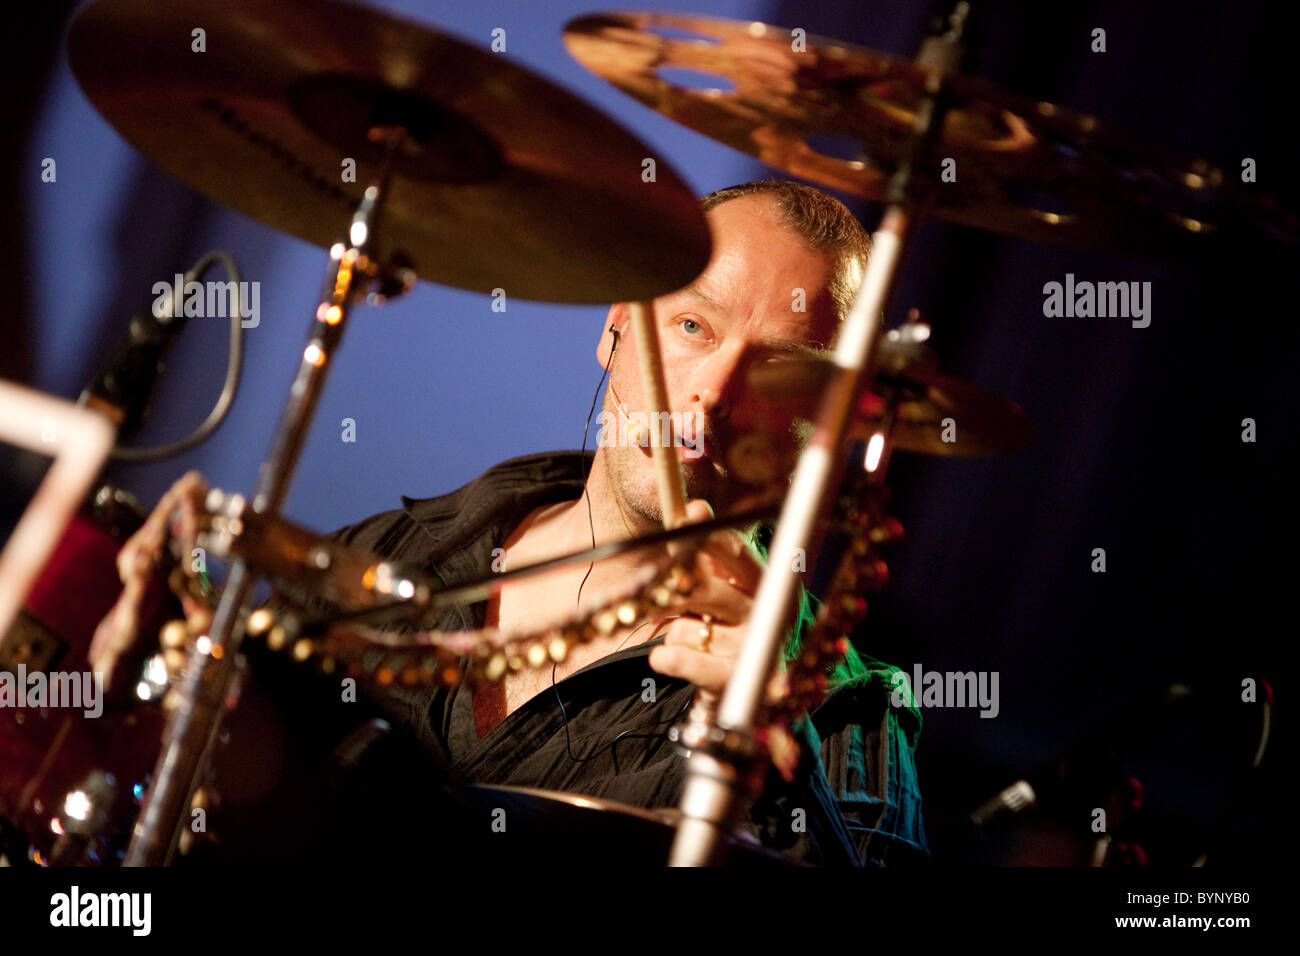 The drummer Frank van Essen with the Celtic Rock band Iona in concert, the UK 2010 - Stock Image